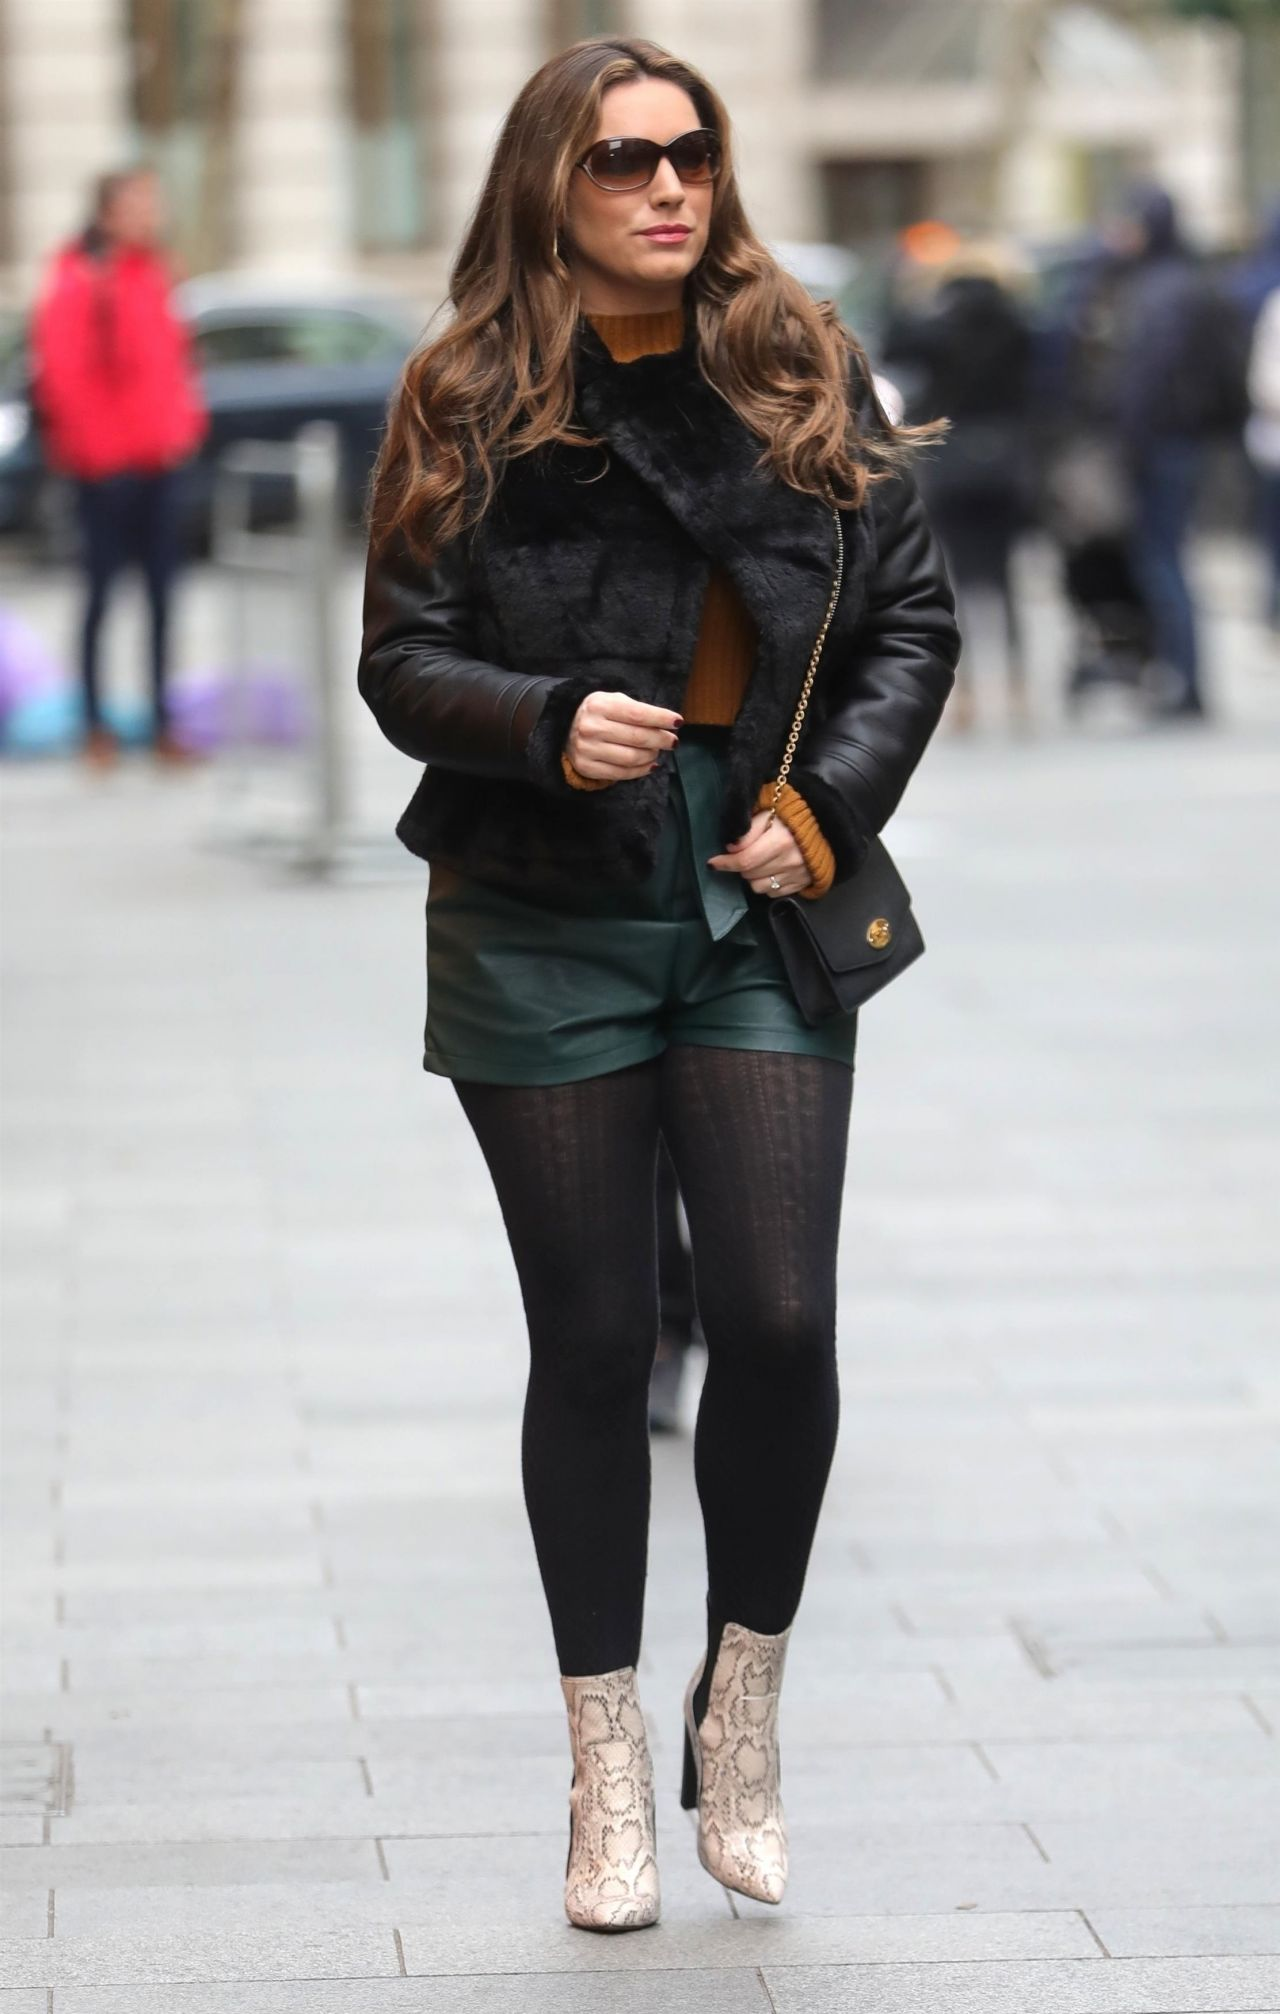 Kelly Brook In Leather Hot-Pants And A Fur Jacket 01312019-8896